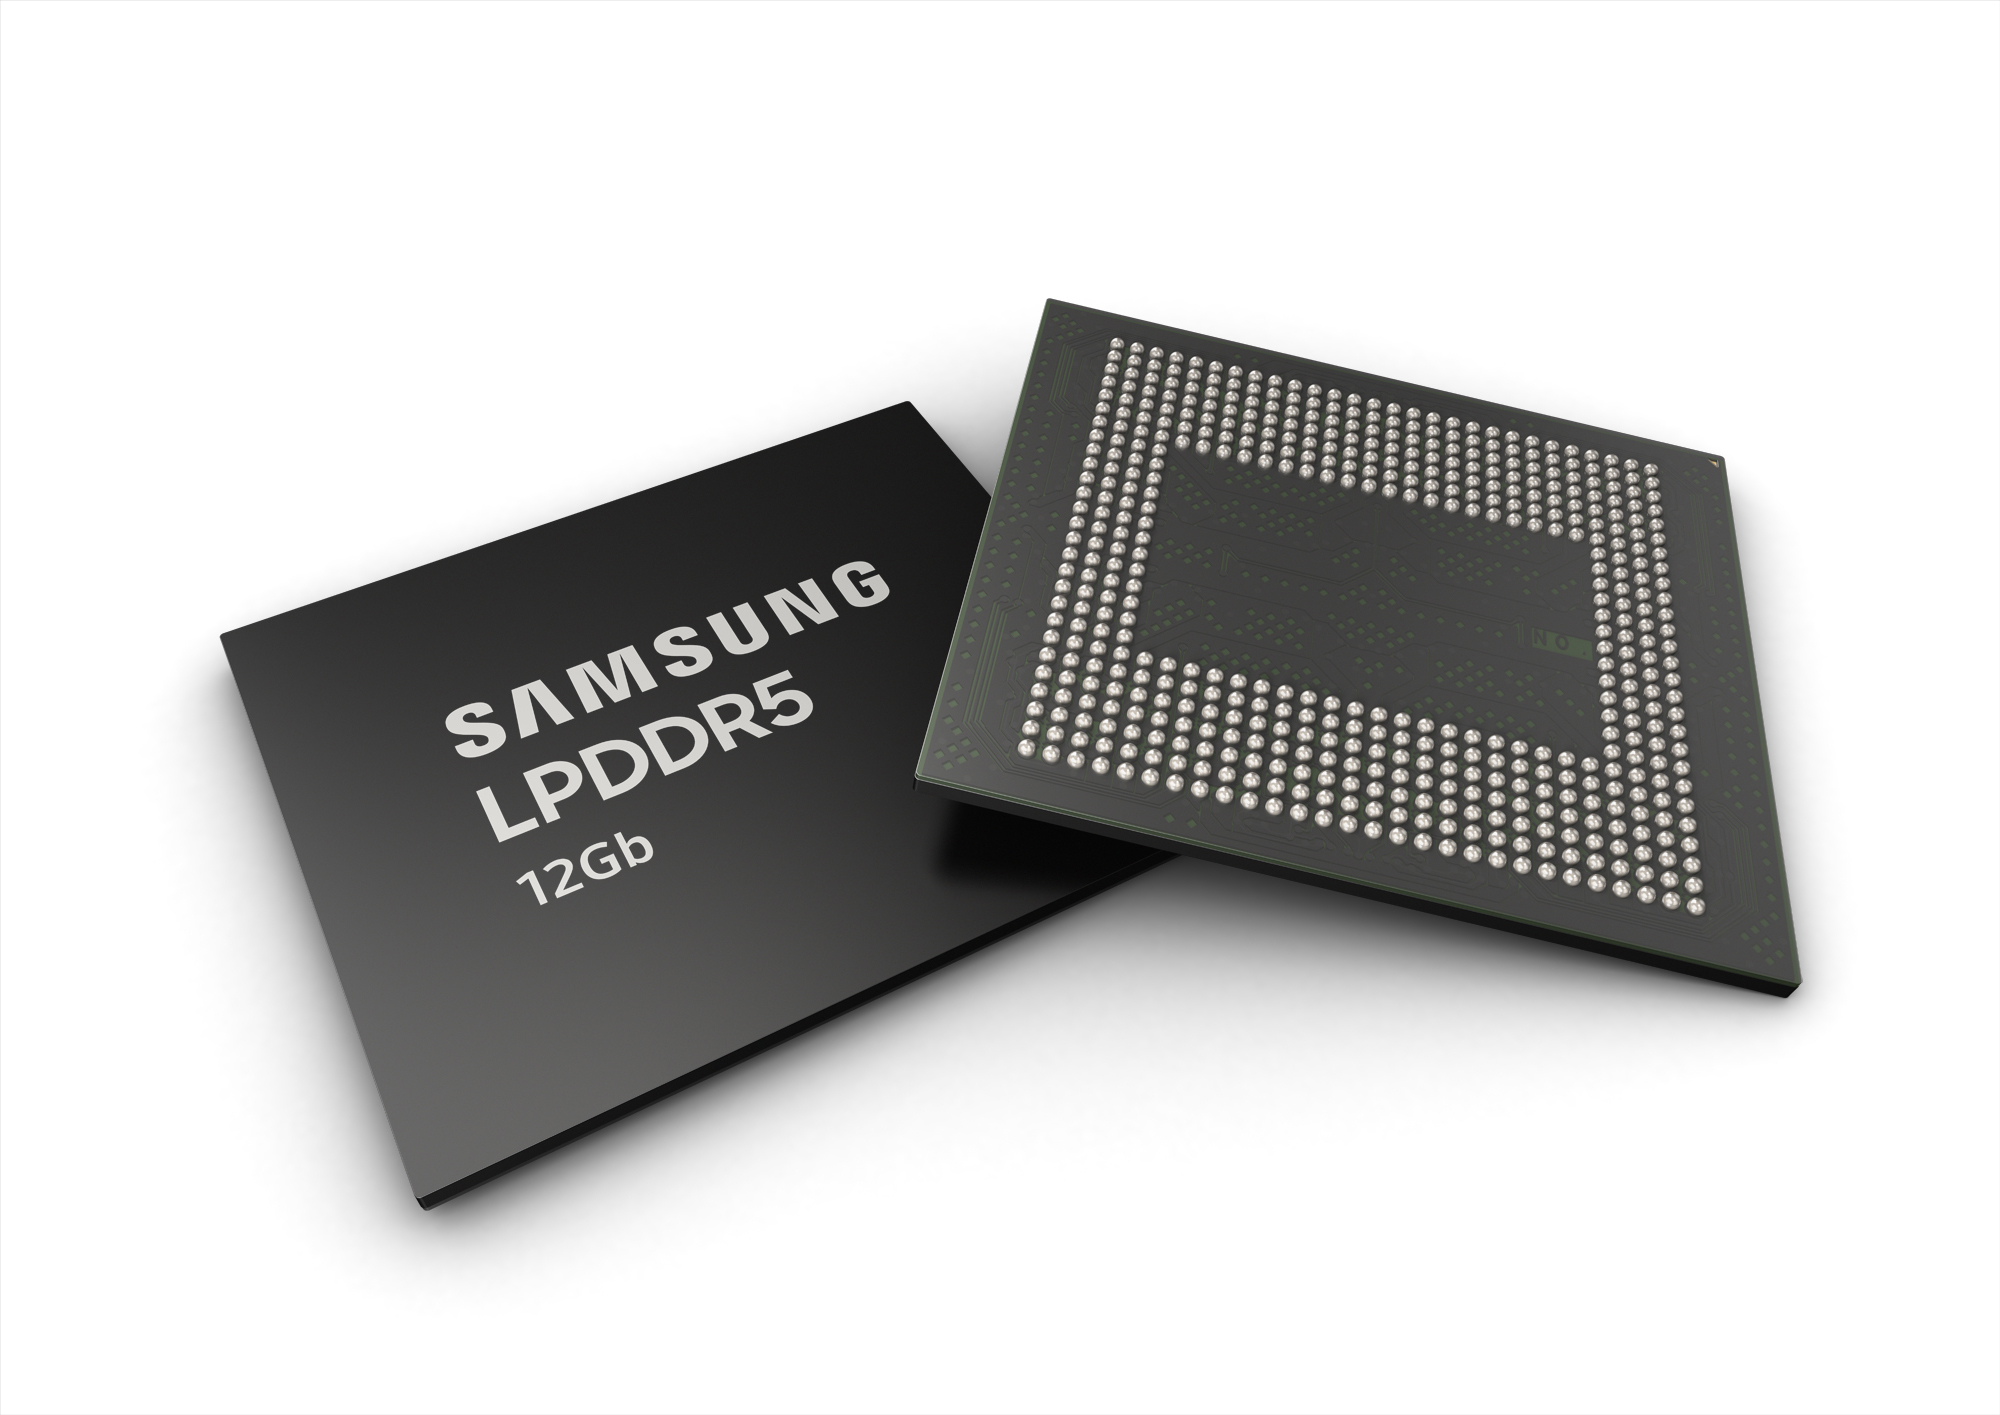 Samsung 12Gb LPDDR5 DRAM now in mass production